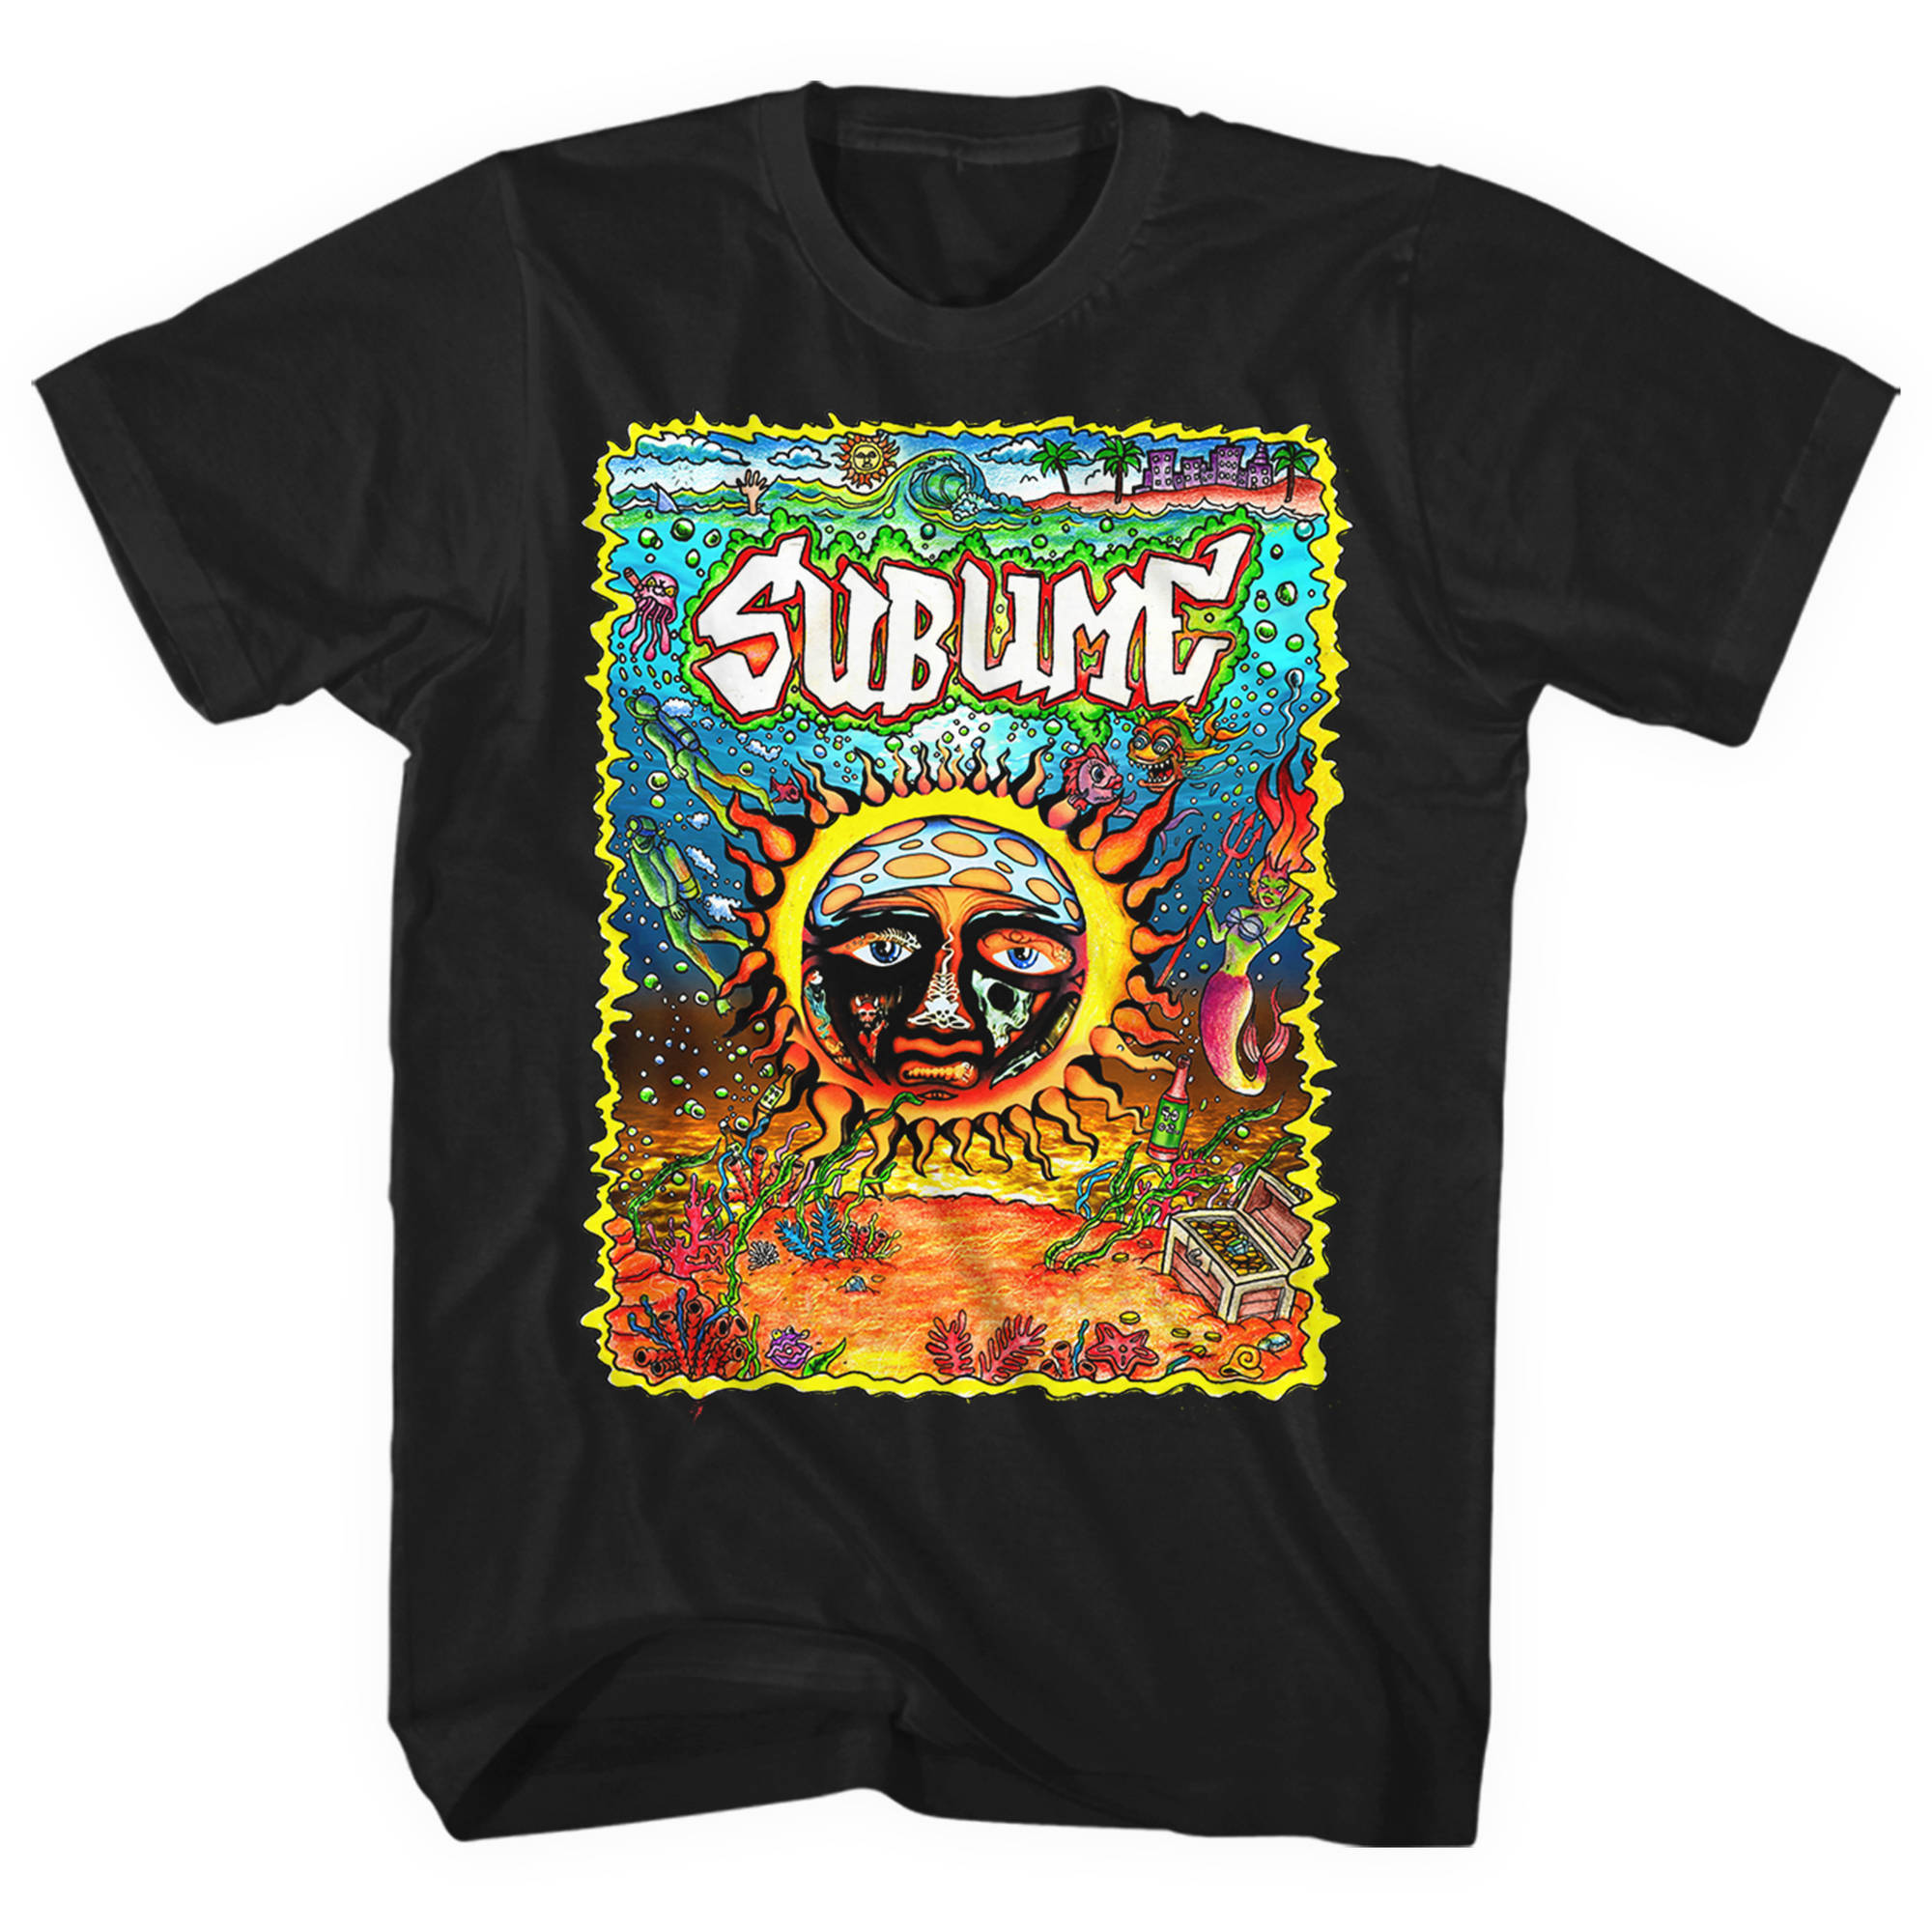 Sublime Under the Sea Men's Graphic Tee